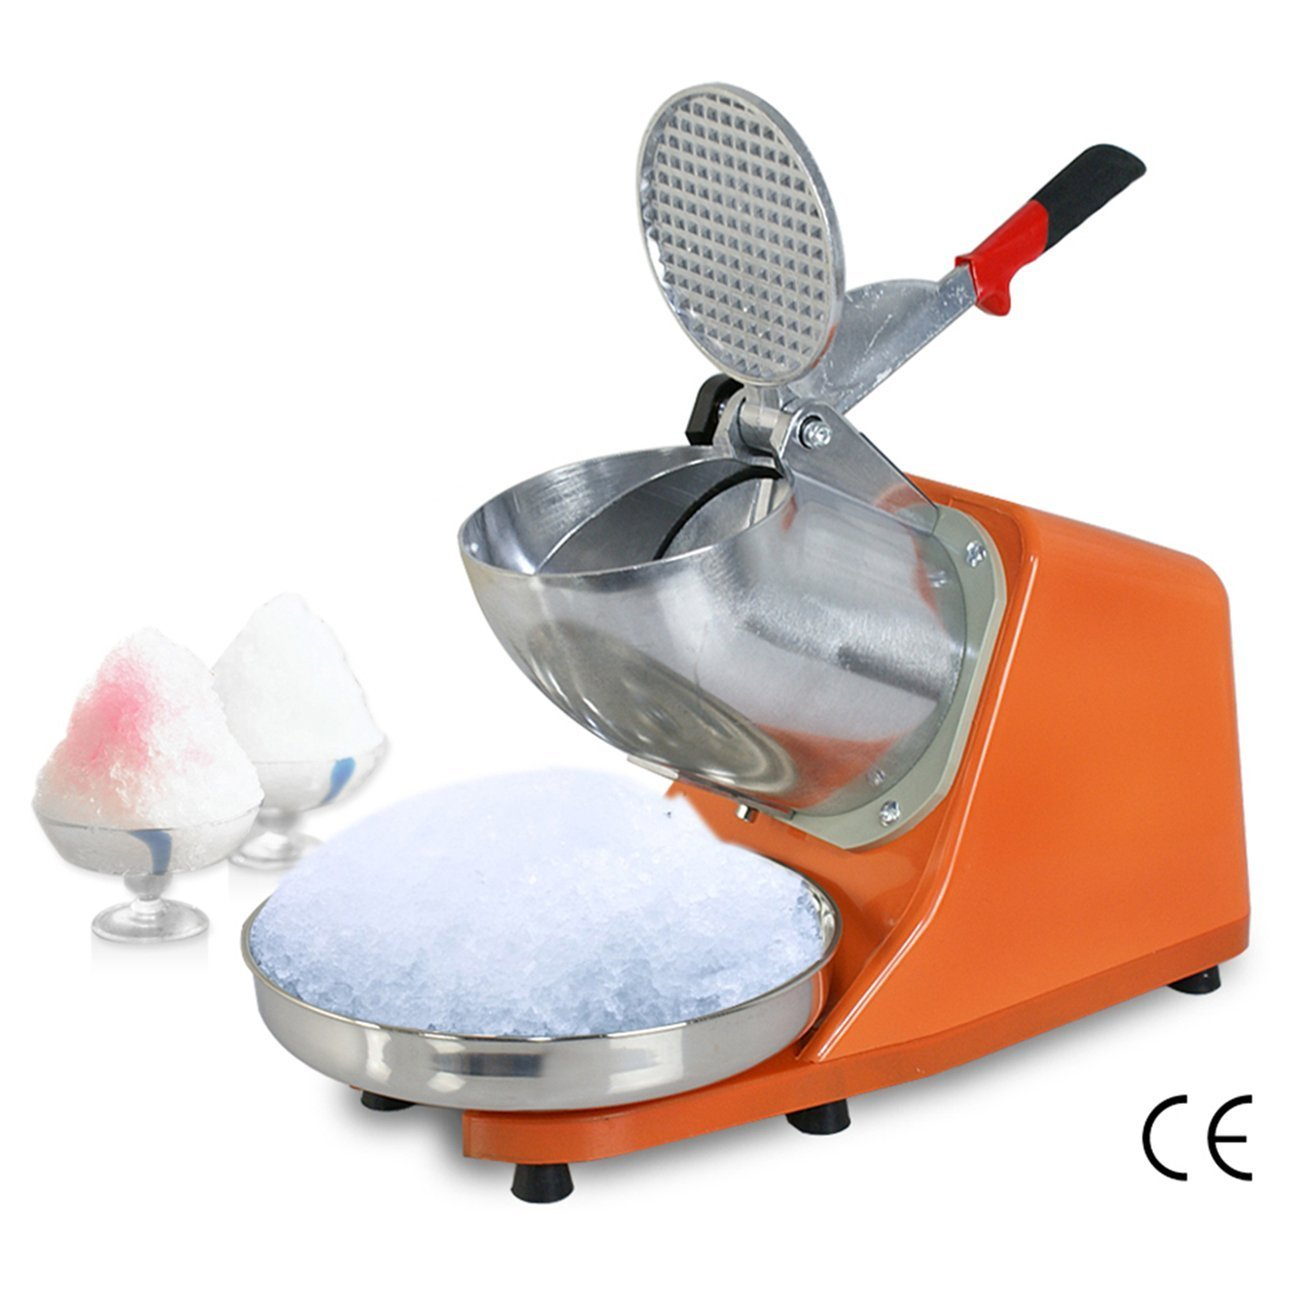 SuperDeal 300W Electric Ice Shaver Machine Shaved Ice Snow Cone Maker 143 lbs New (Orange) by SUPER DEAL